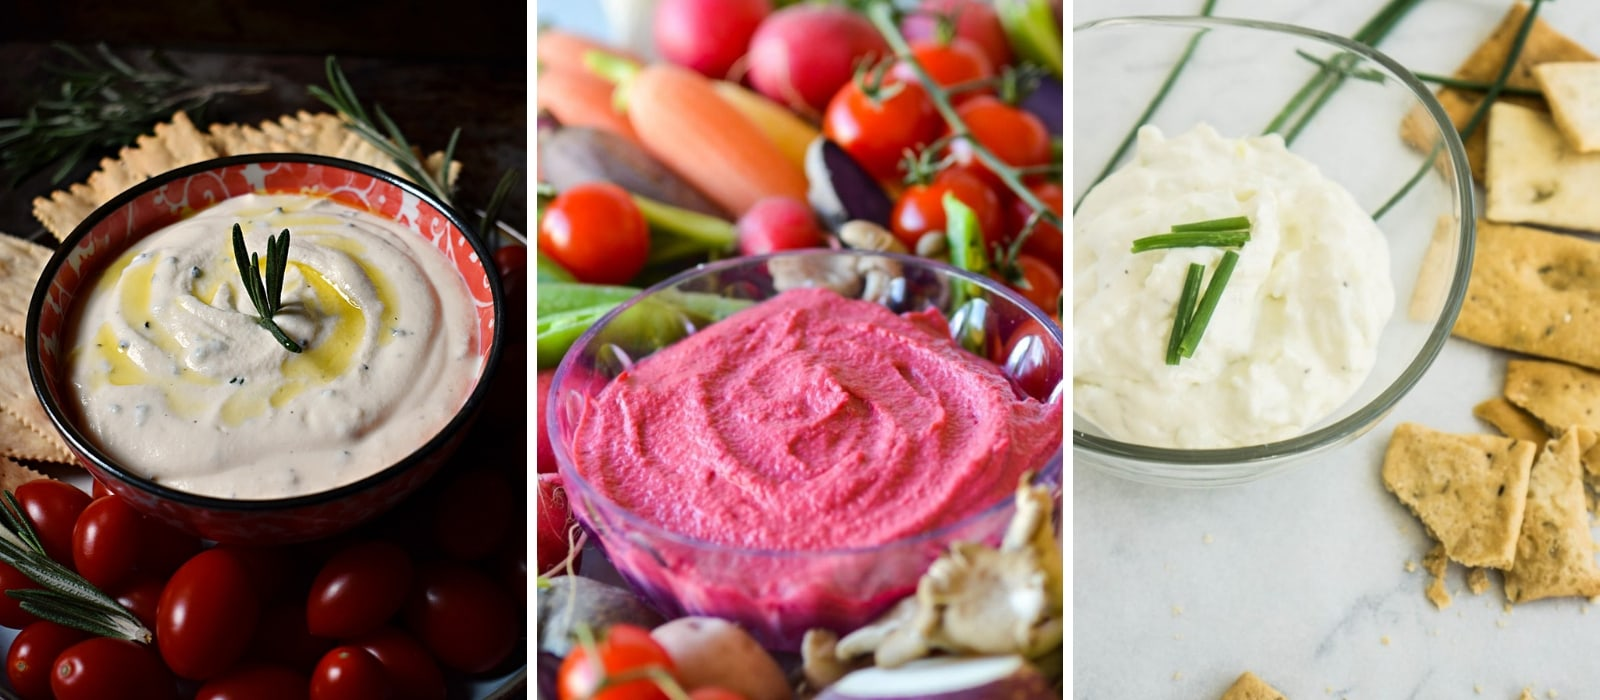 Cold Dip Recipes for Your Next Wine Tasting Party| Cold Dip Recipes| Appetizers for Your Wine Party| Wine Tasting Party Dips| Dips for Your Wine Tasting Party| Cold Dips and Appetizers| Cold Dips and Appetizers Made Simple| Party Food| #colddips #appetizers #recipes #wineanddine #dips #partyfood